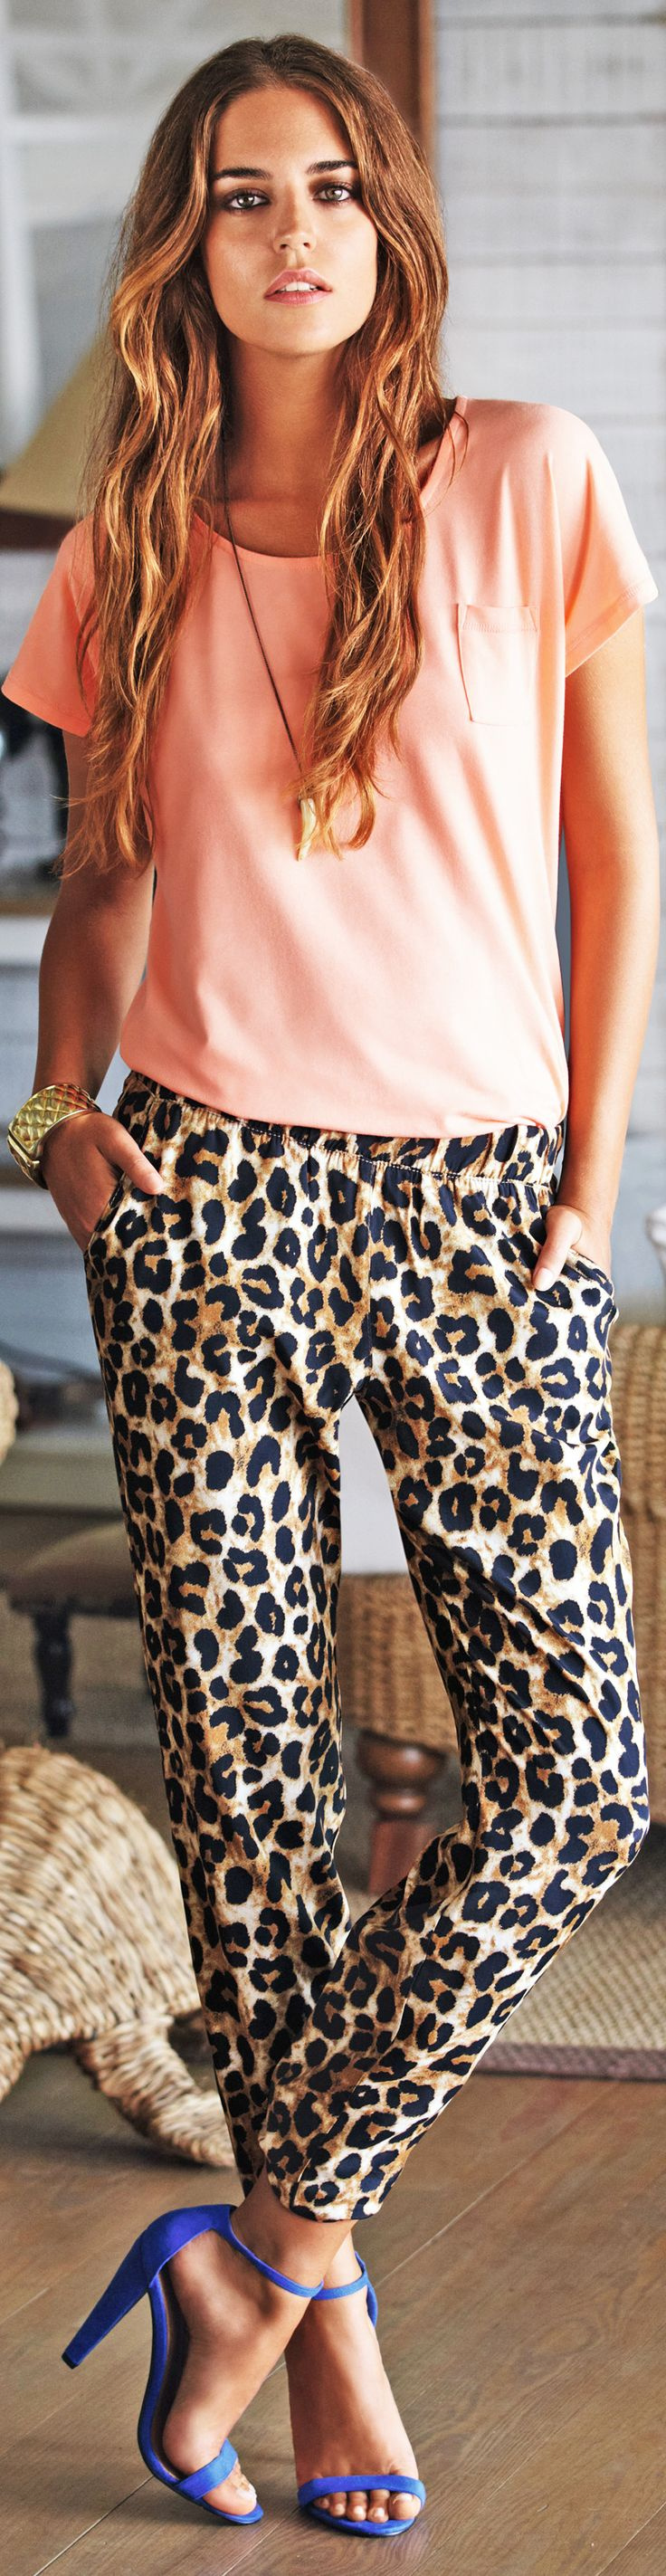 summer weight leopard betty barclay = CLICK TO READ : http://boomerinas.com/2012/10/animal-prints-for-women-over-40-50-60/